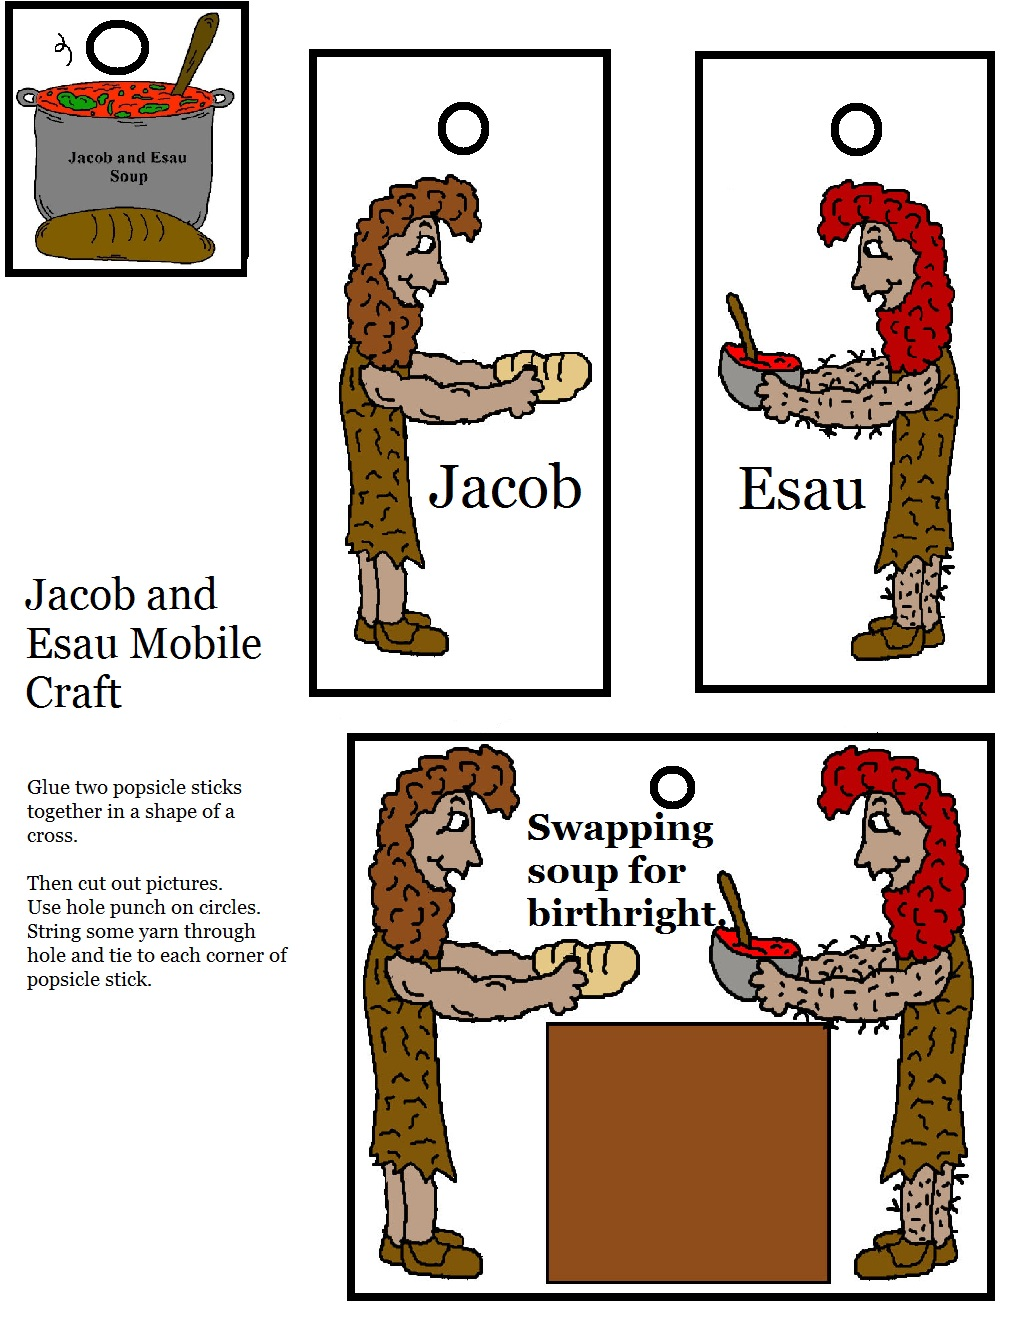 Jacob and esau mobile craft for Jacob and esau crafts